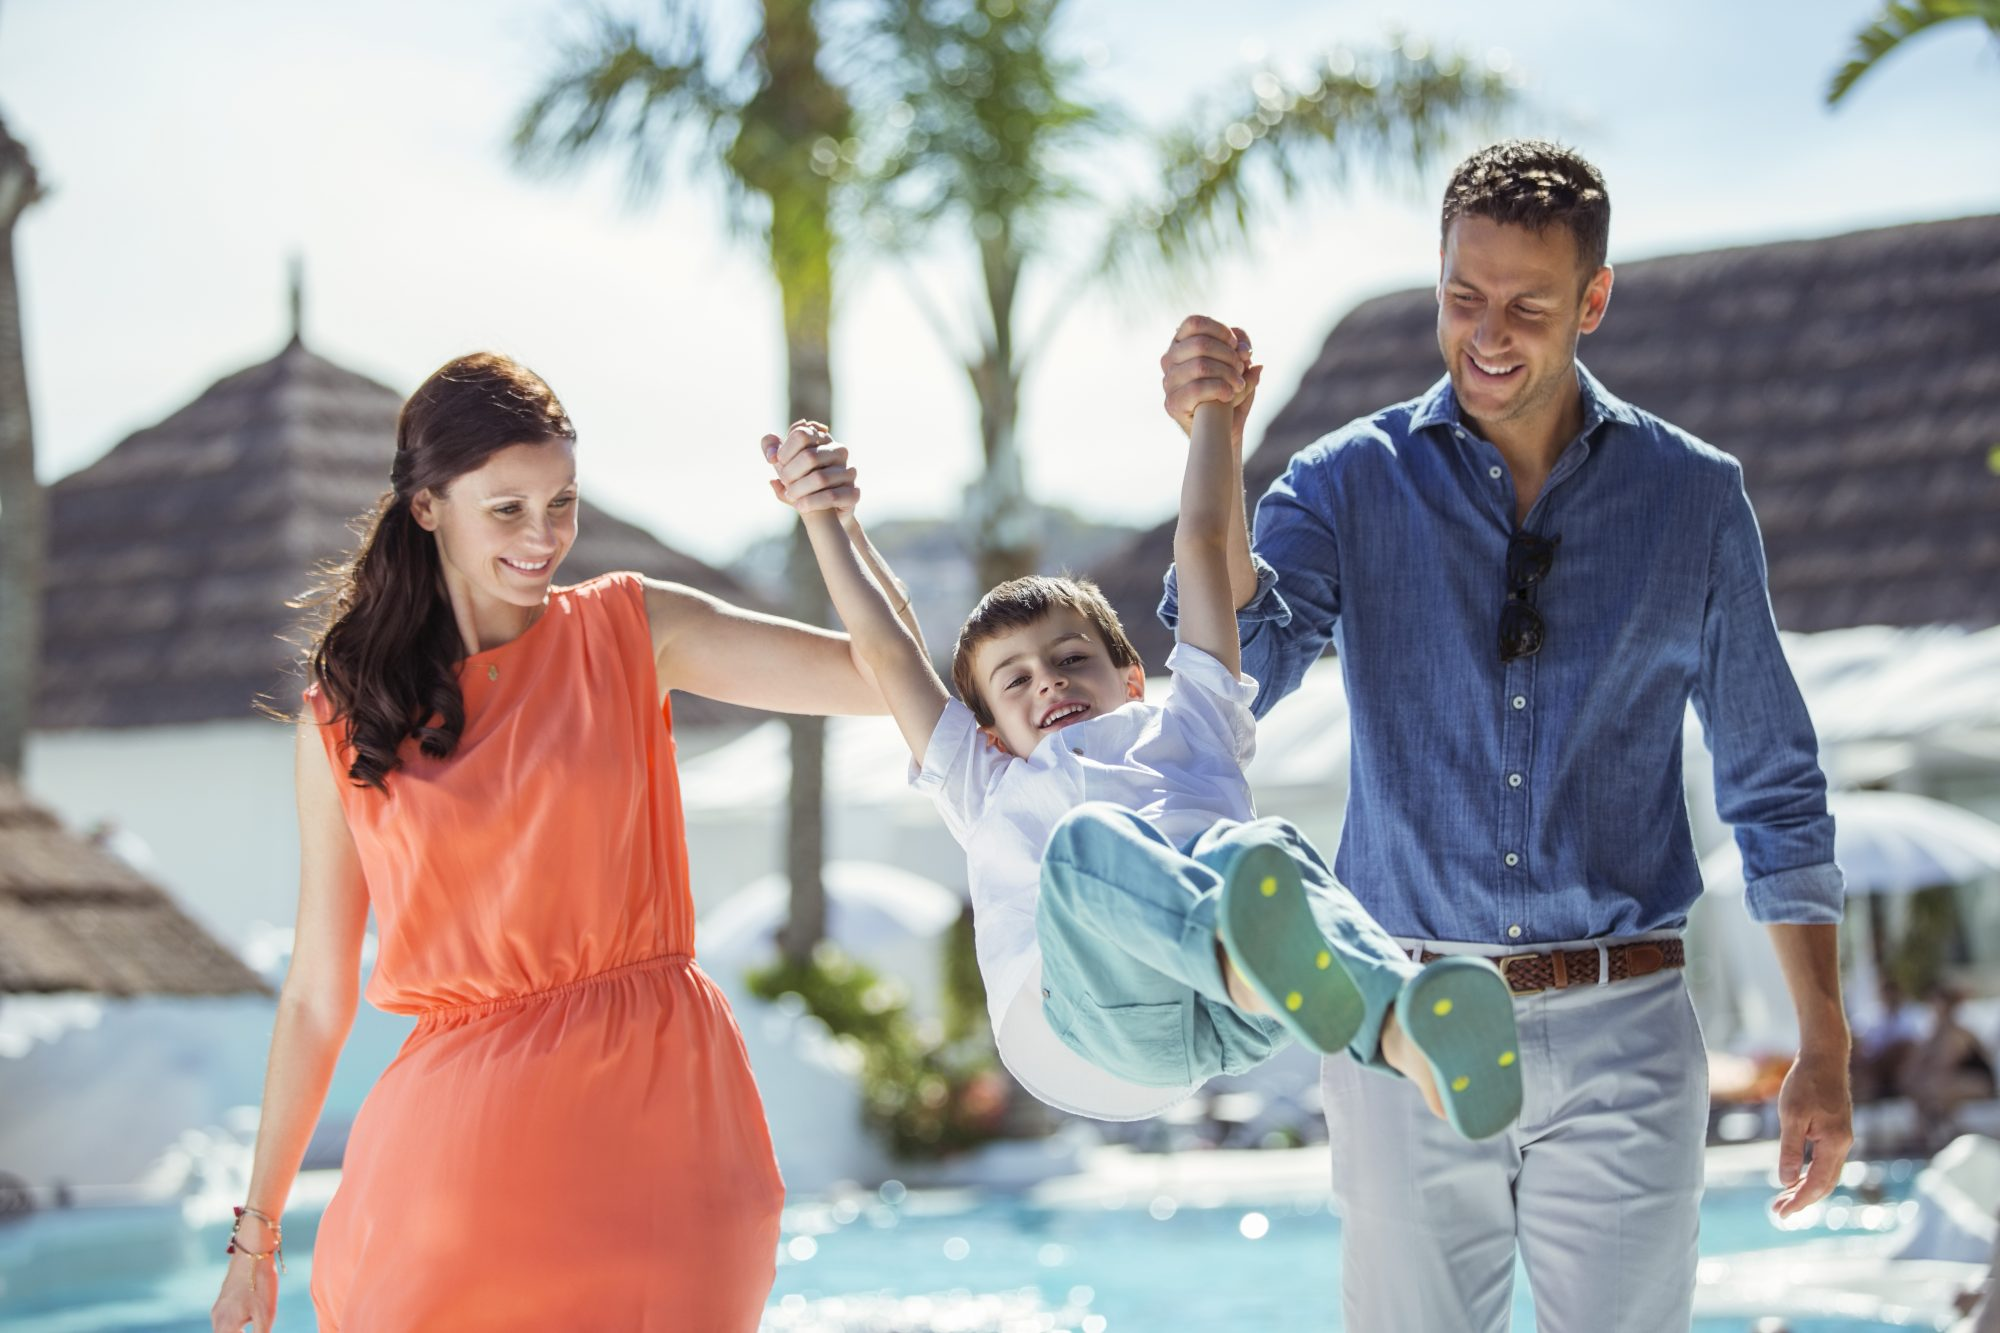 Couple with Kid at Pool